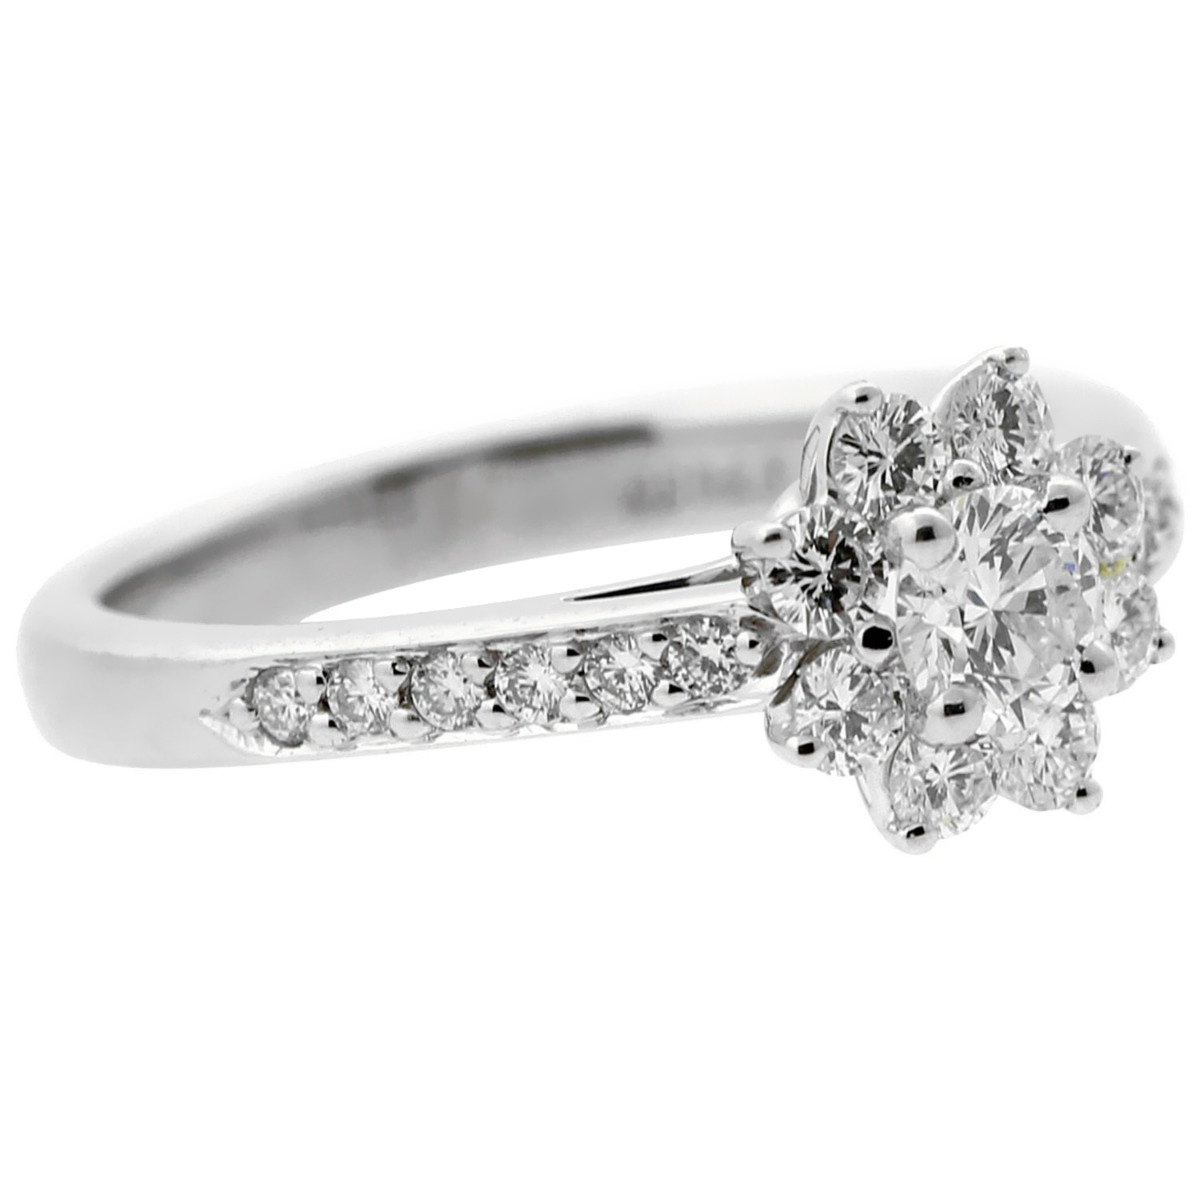 Tiffany & Co Diamond Platinum Flower Ring - Tiffany and Co Jewelry